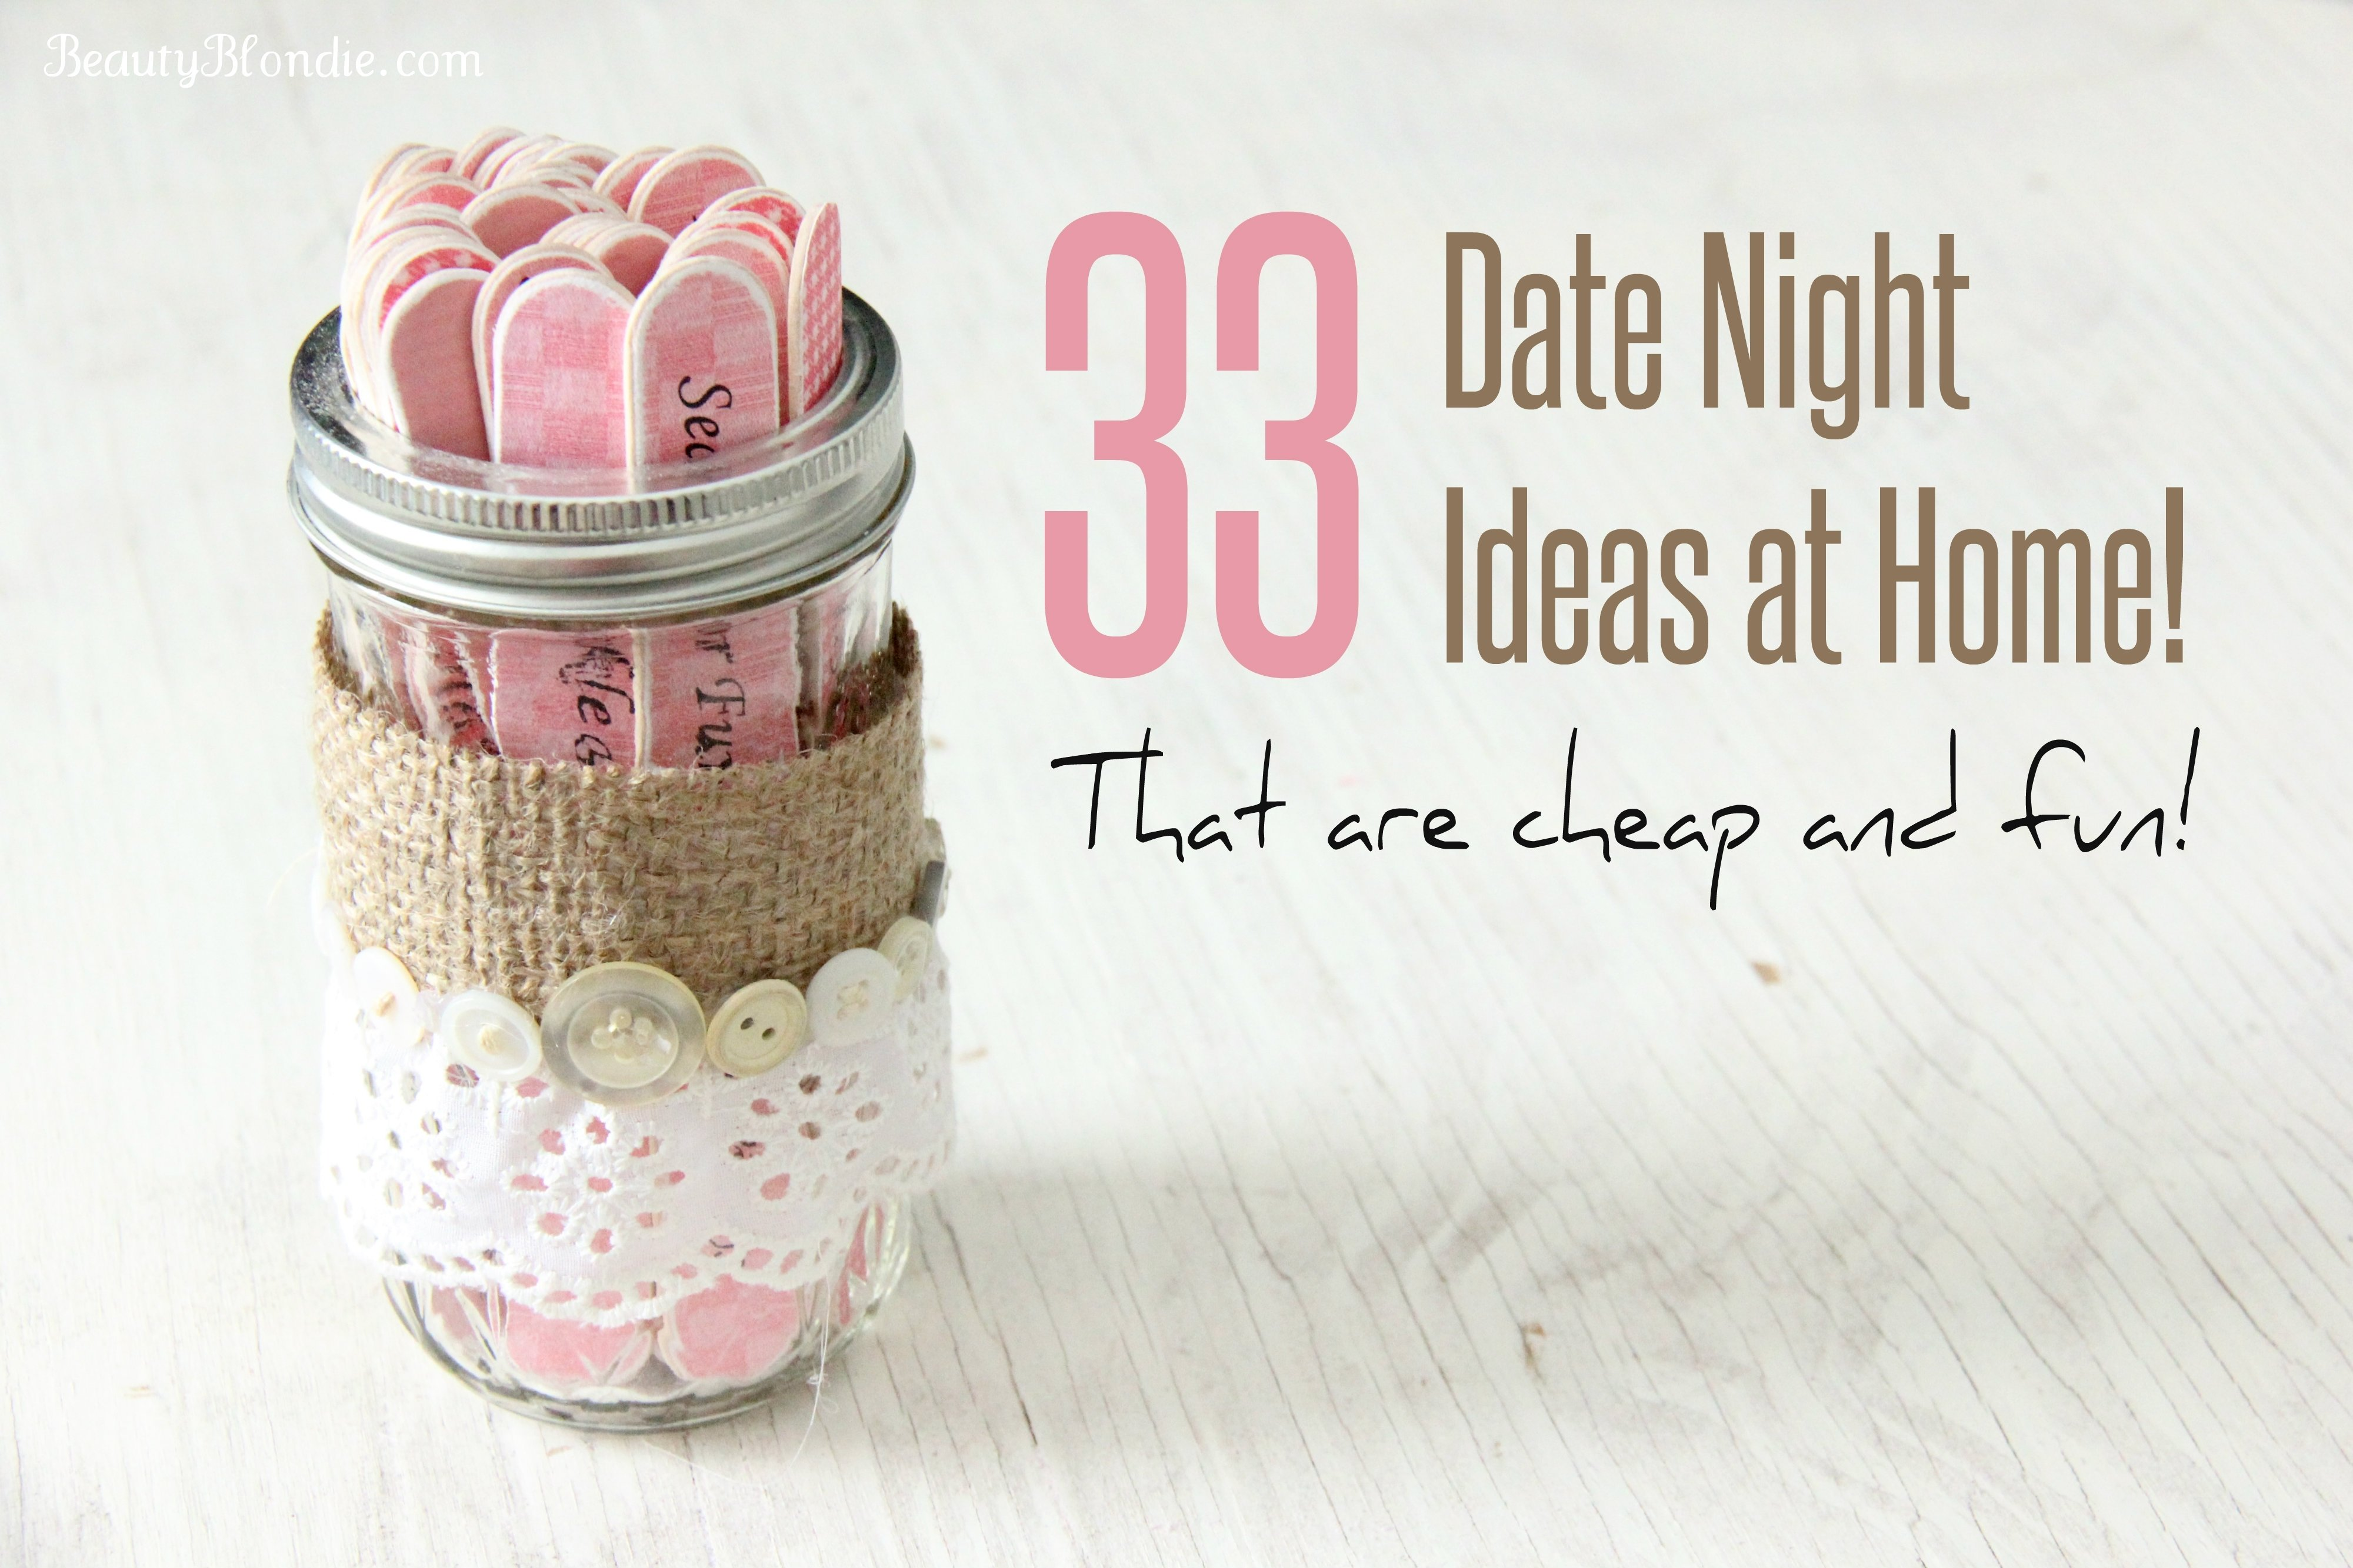 Awesome Romantic Date Night At Home Ideas Frieze - Home Decorating ...